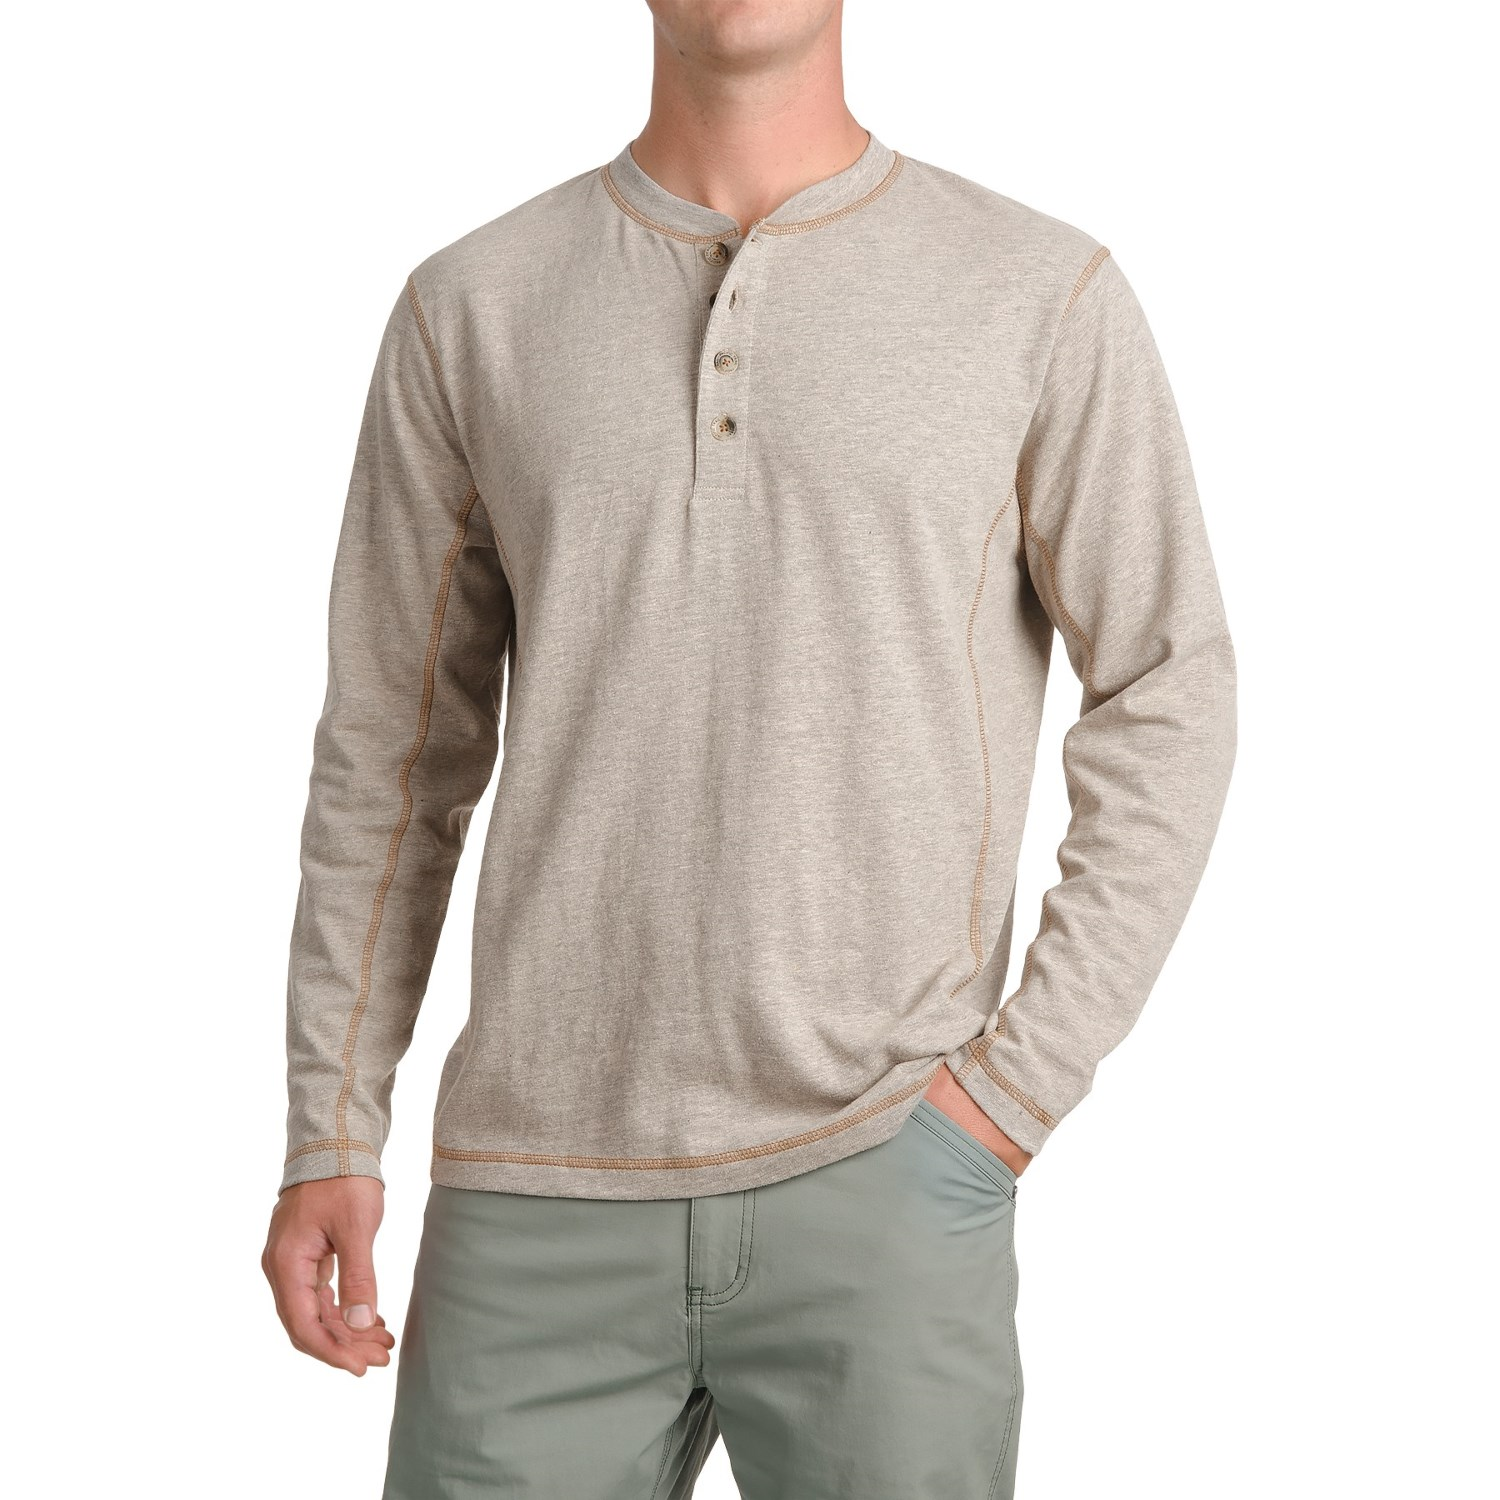 Pacific trail henley shirt for men save 66 for Men s thermal henley long sleeve shirts